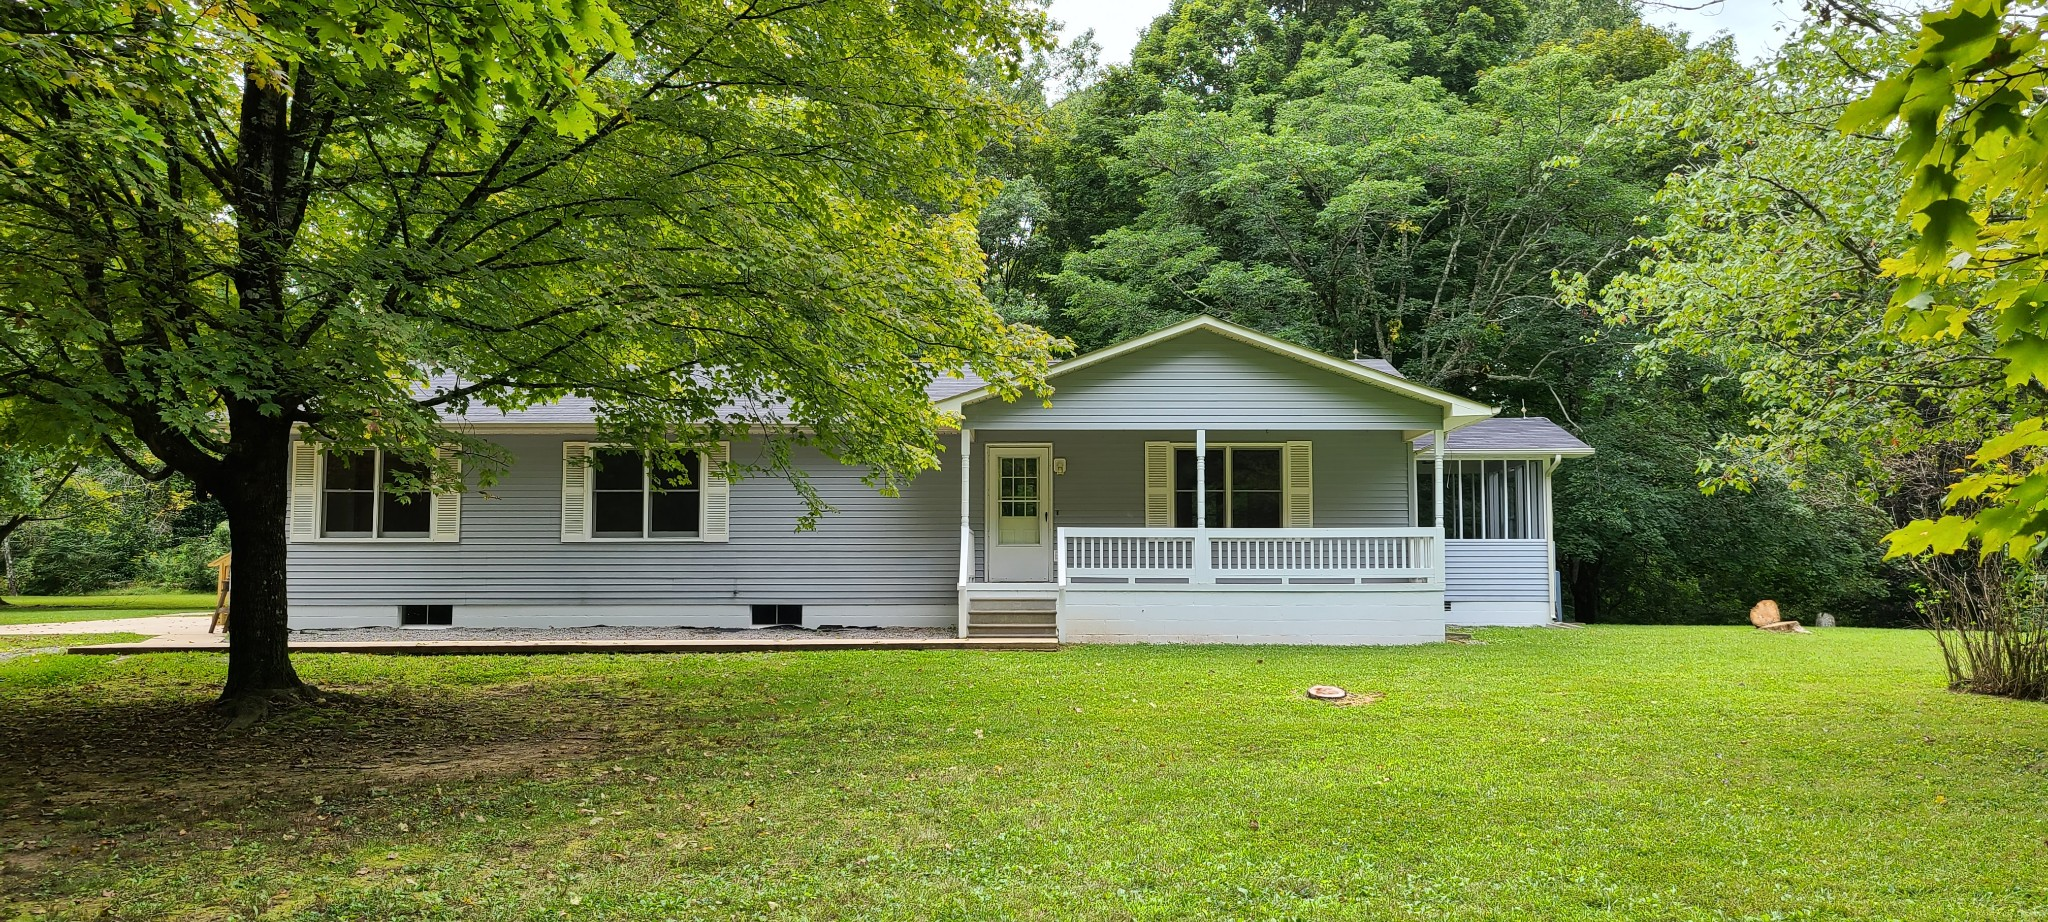 937 Colony Rd Property Photo - Coalmont, TN real estate listing